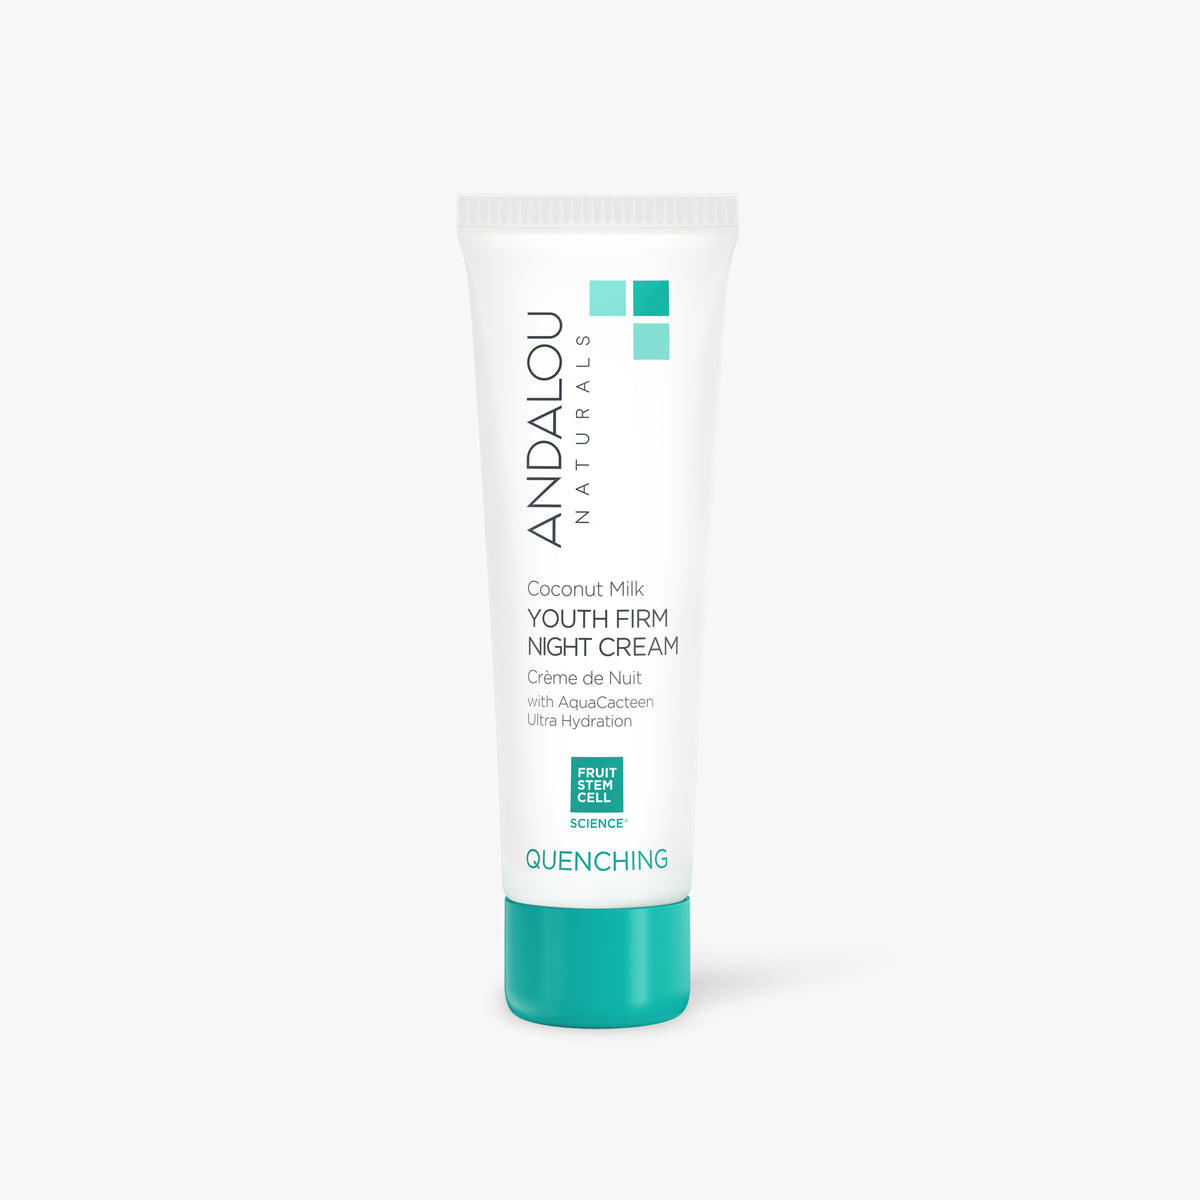 Andalou Naturals Quenching Coconut Milk Youth Firm Night Cream